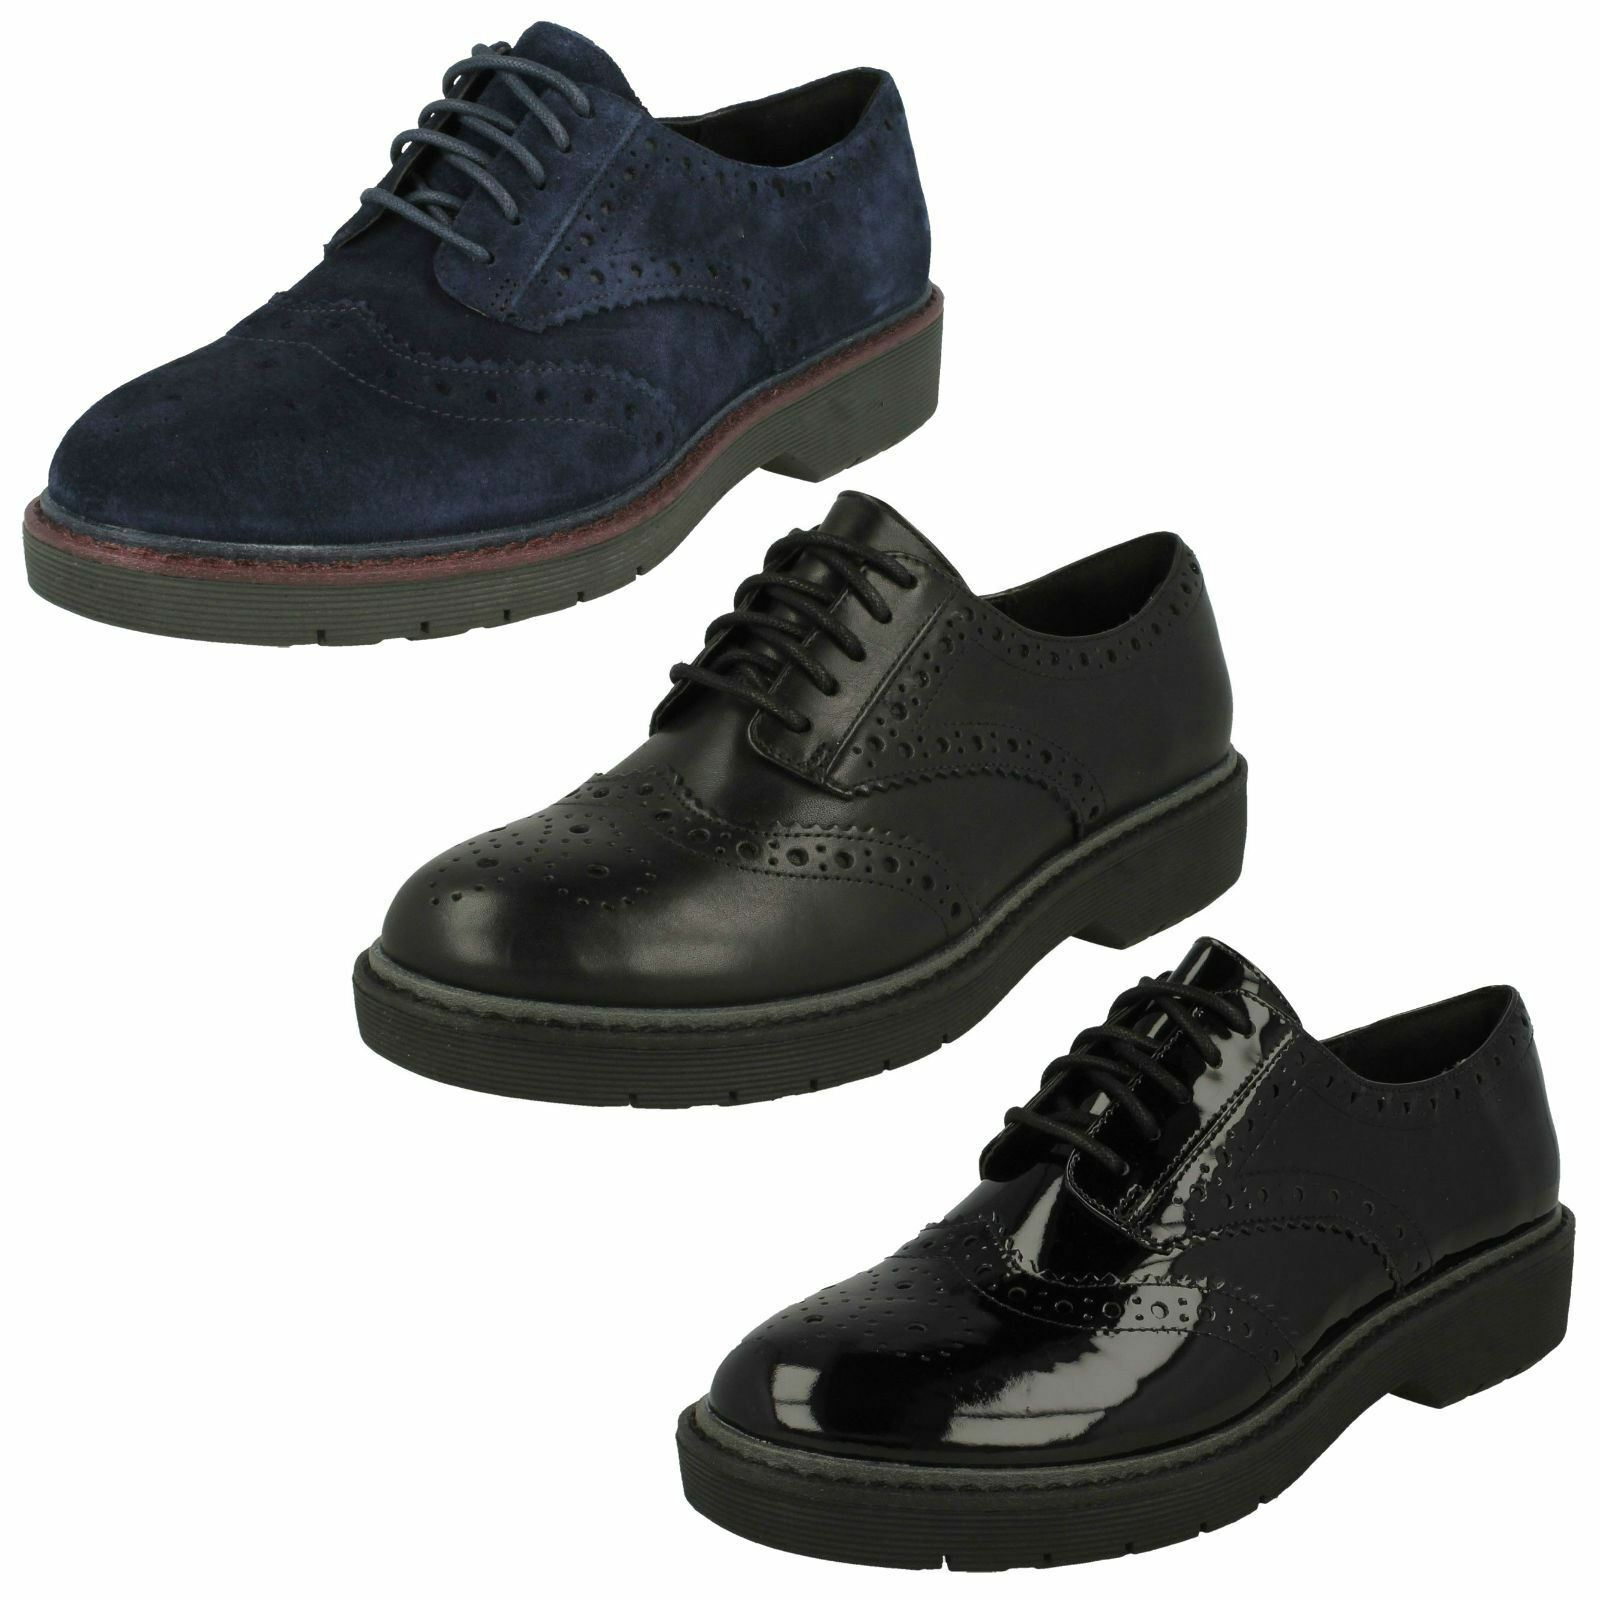 Casual salvaje Descuento por tiempo limitado Ladies Clarks Lace Up Casual Shoes Alexa Darcy